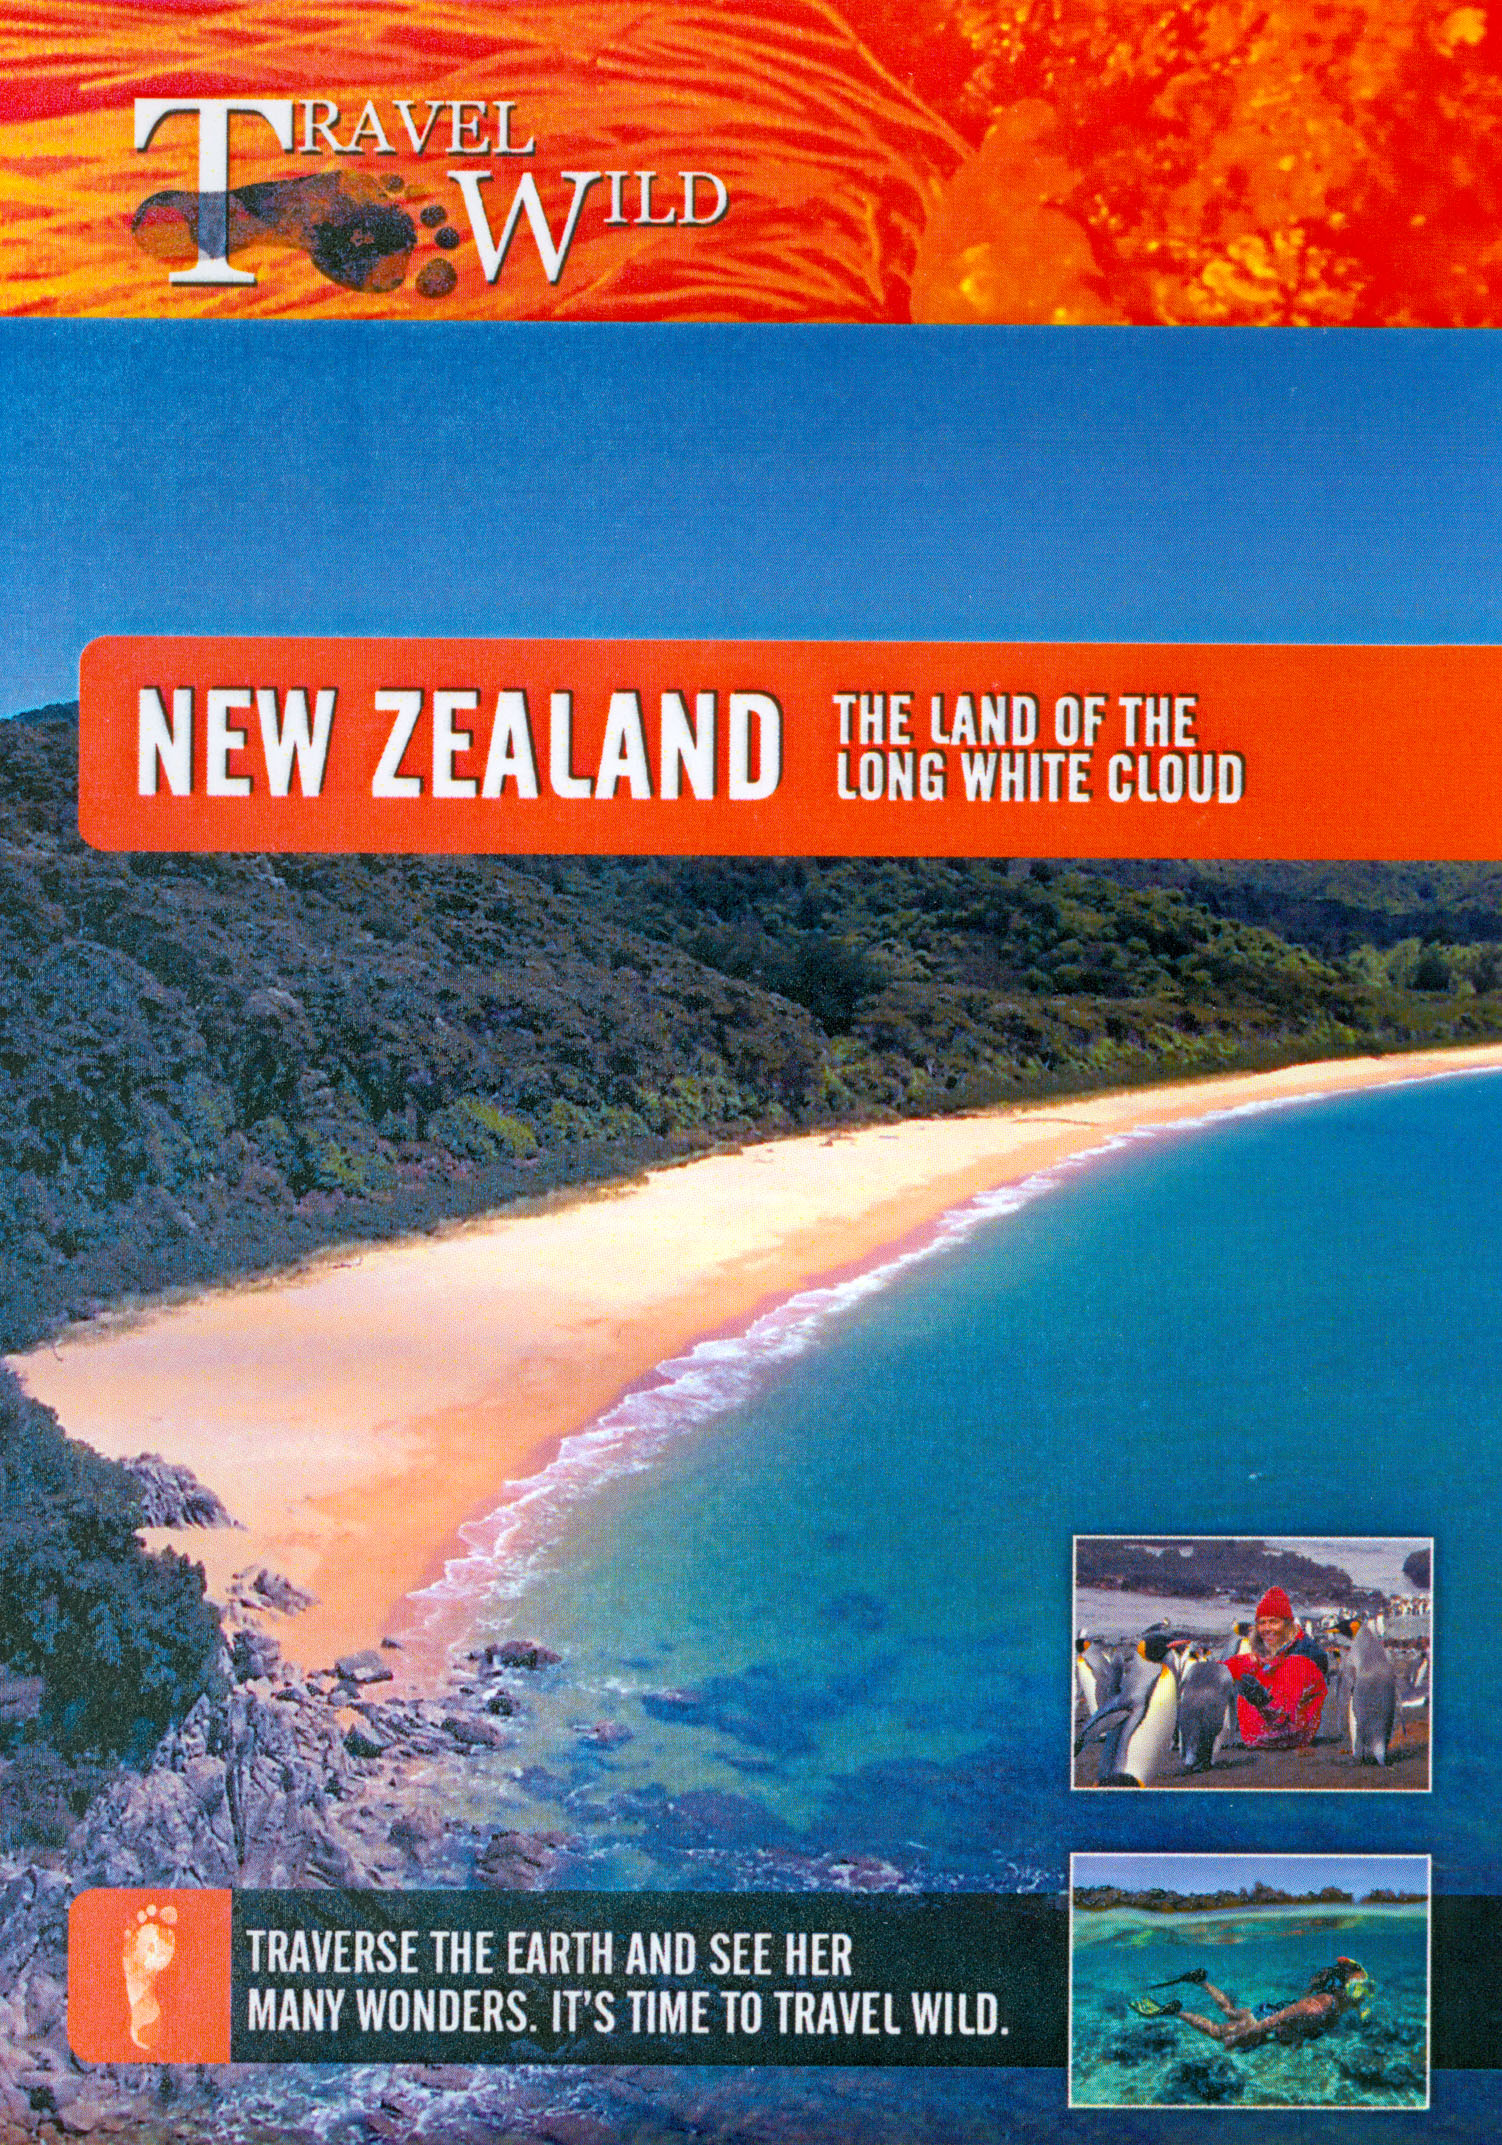 Travel Wild: New Zealand - The Land of the Long White Cloud